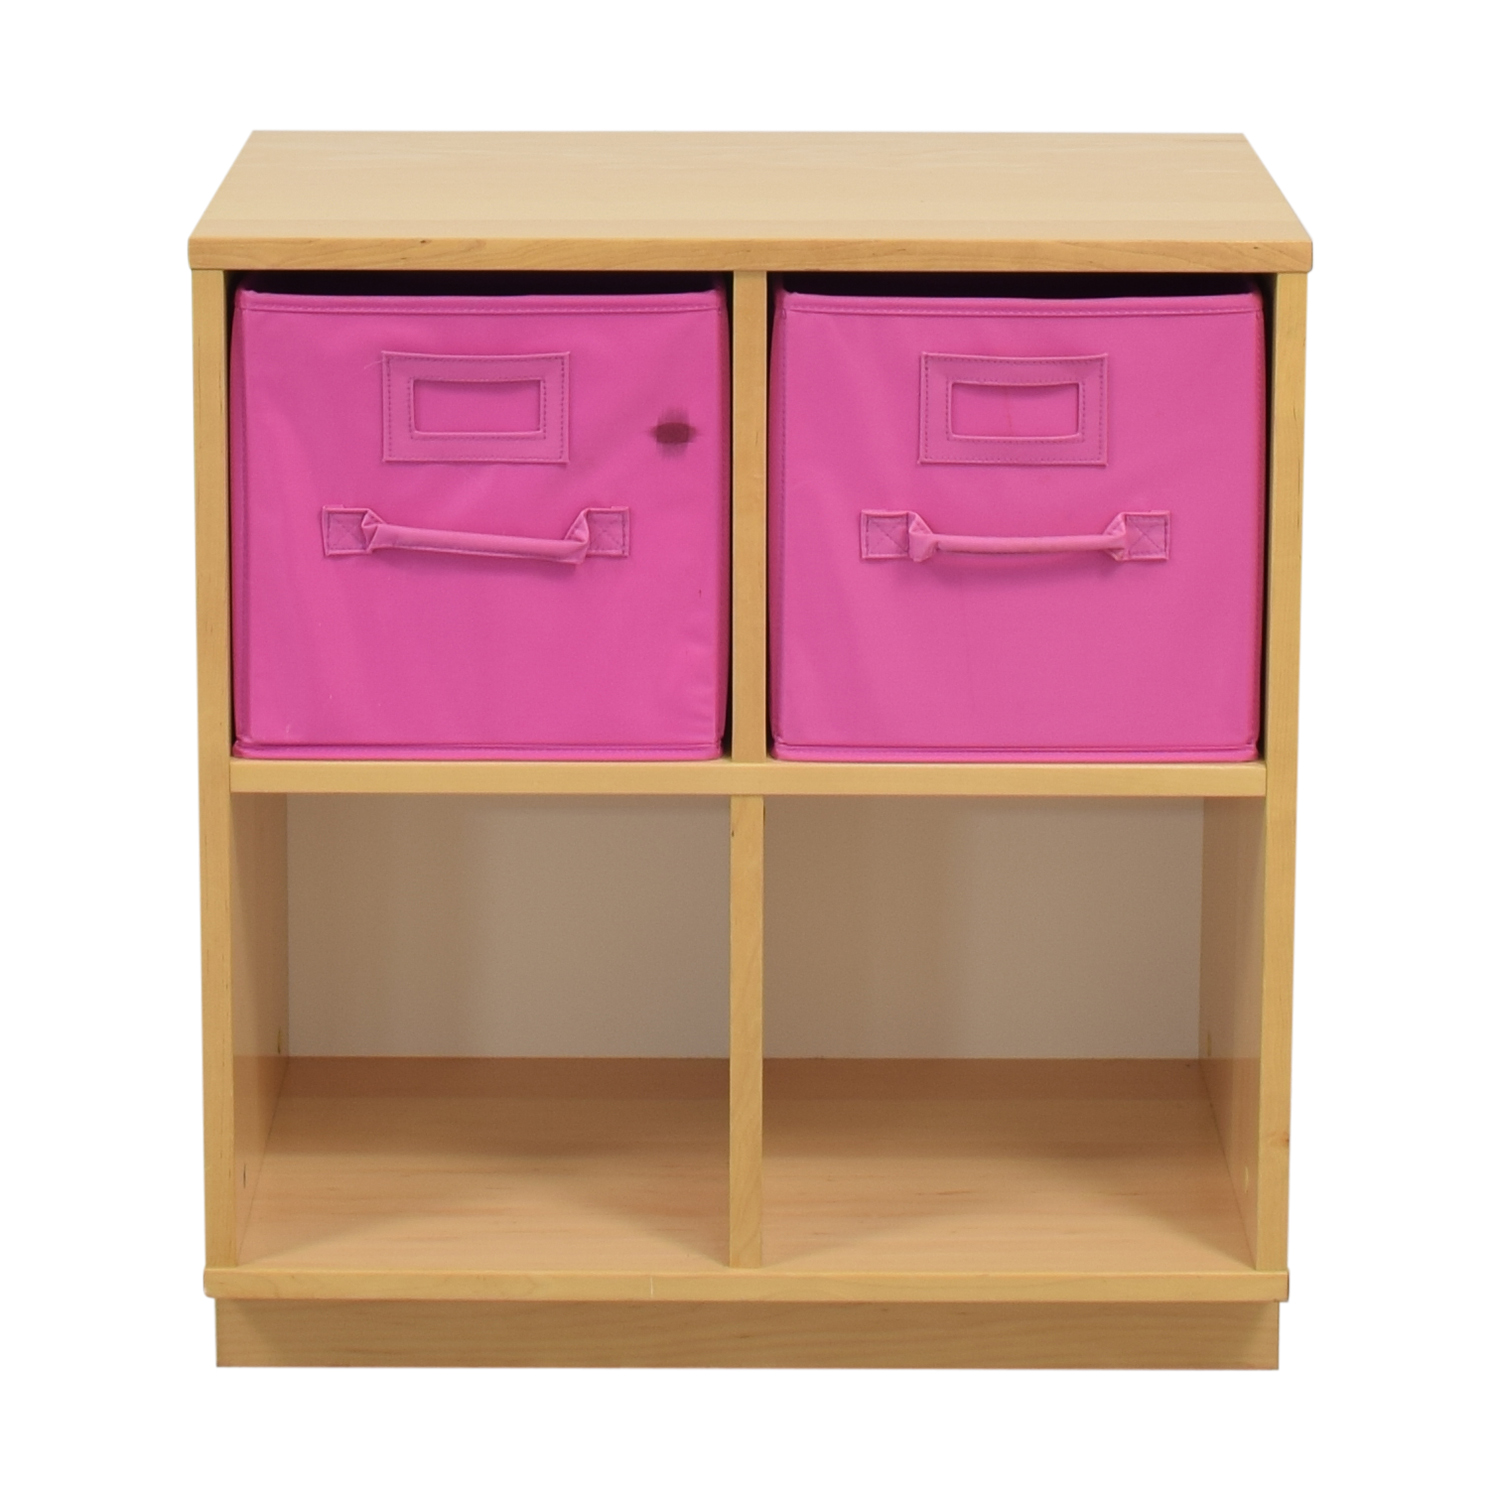 Williams Sonoma Cube Storage Units with Storage Bins / Bookcases & Shelving